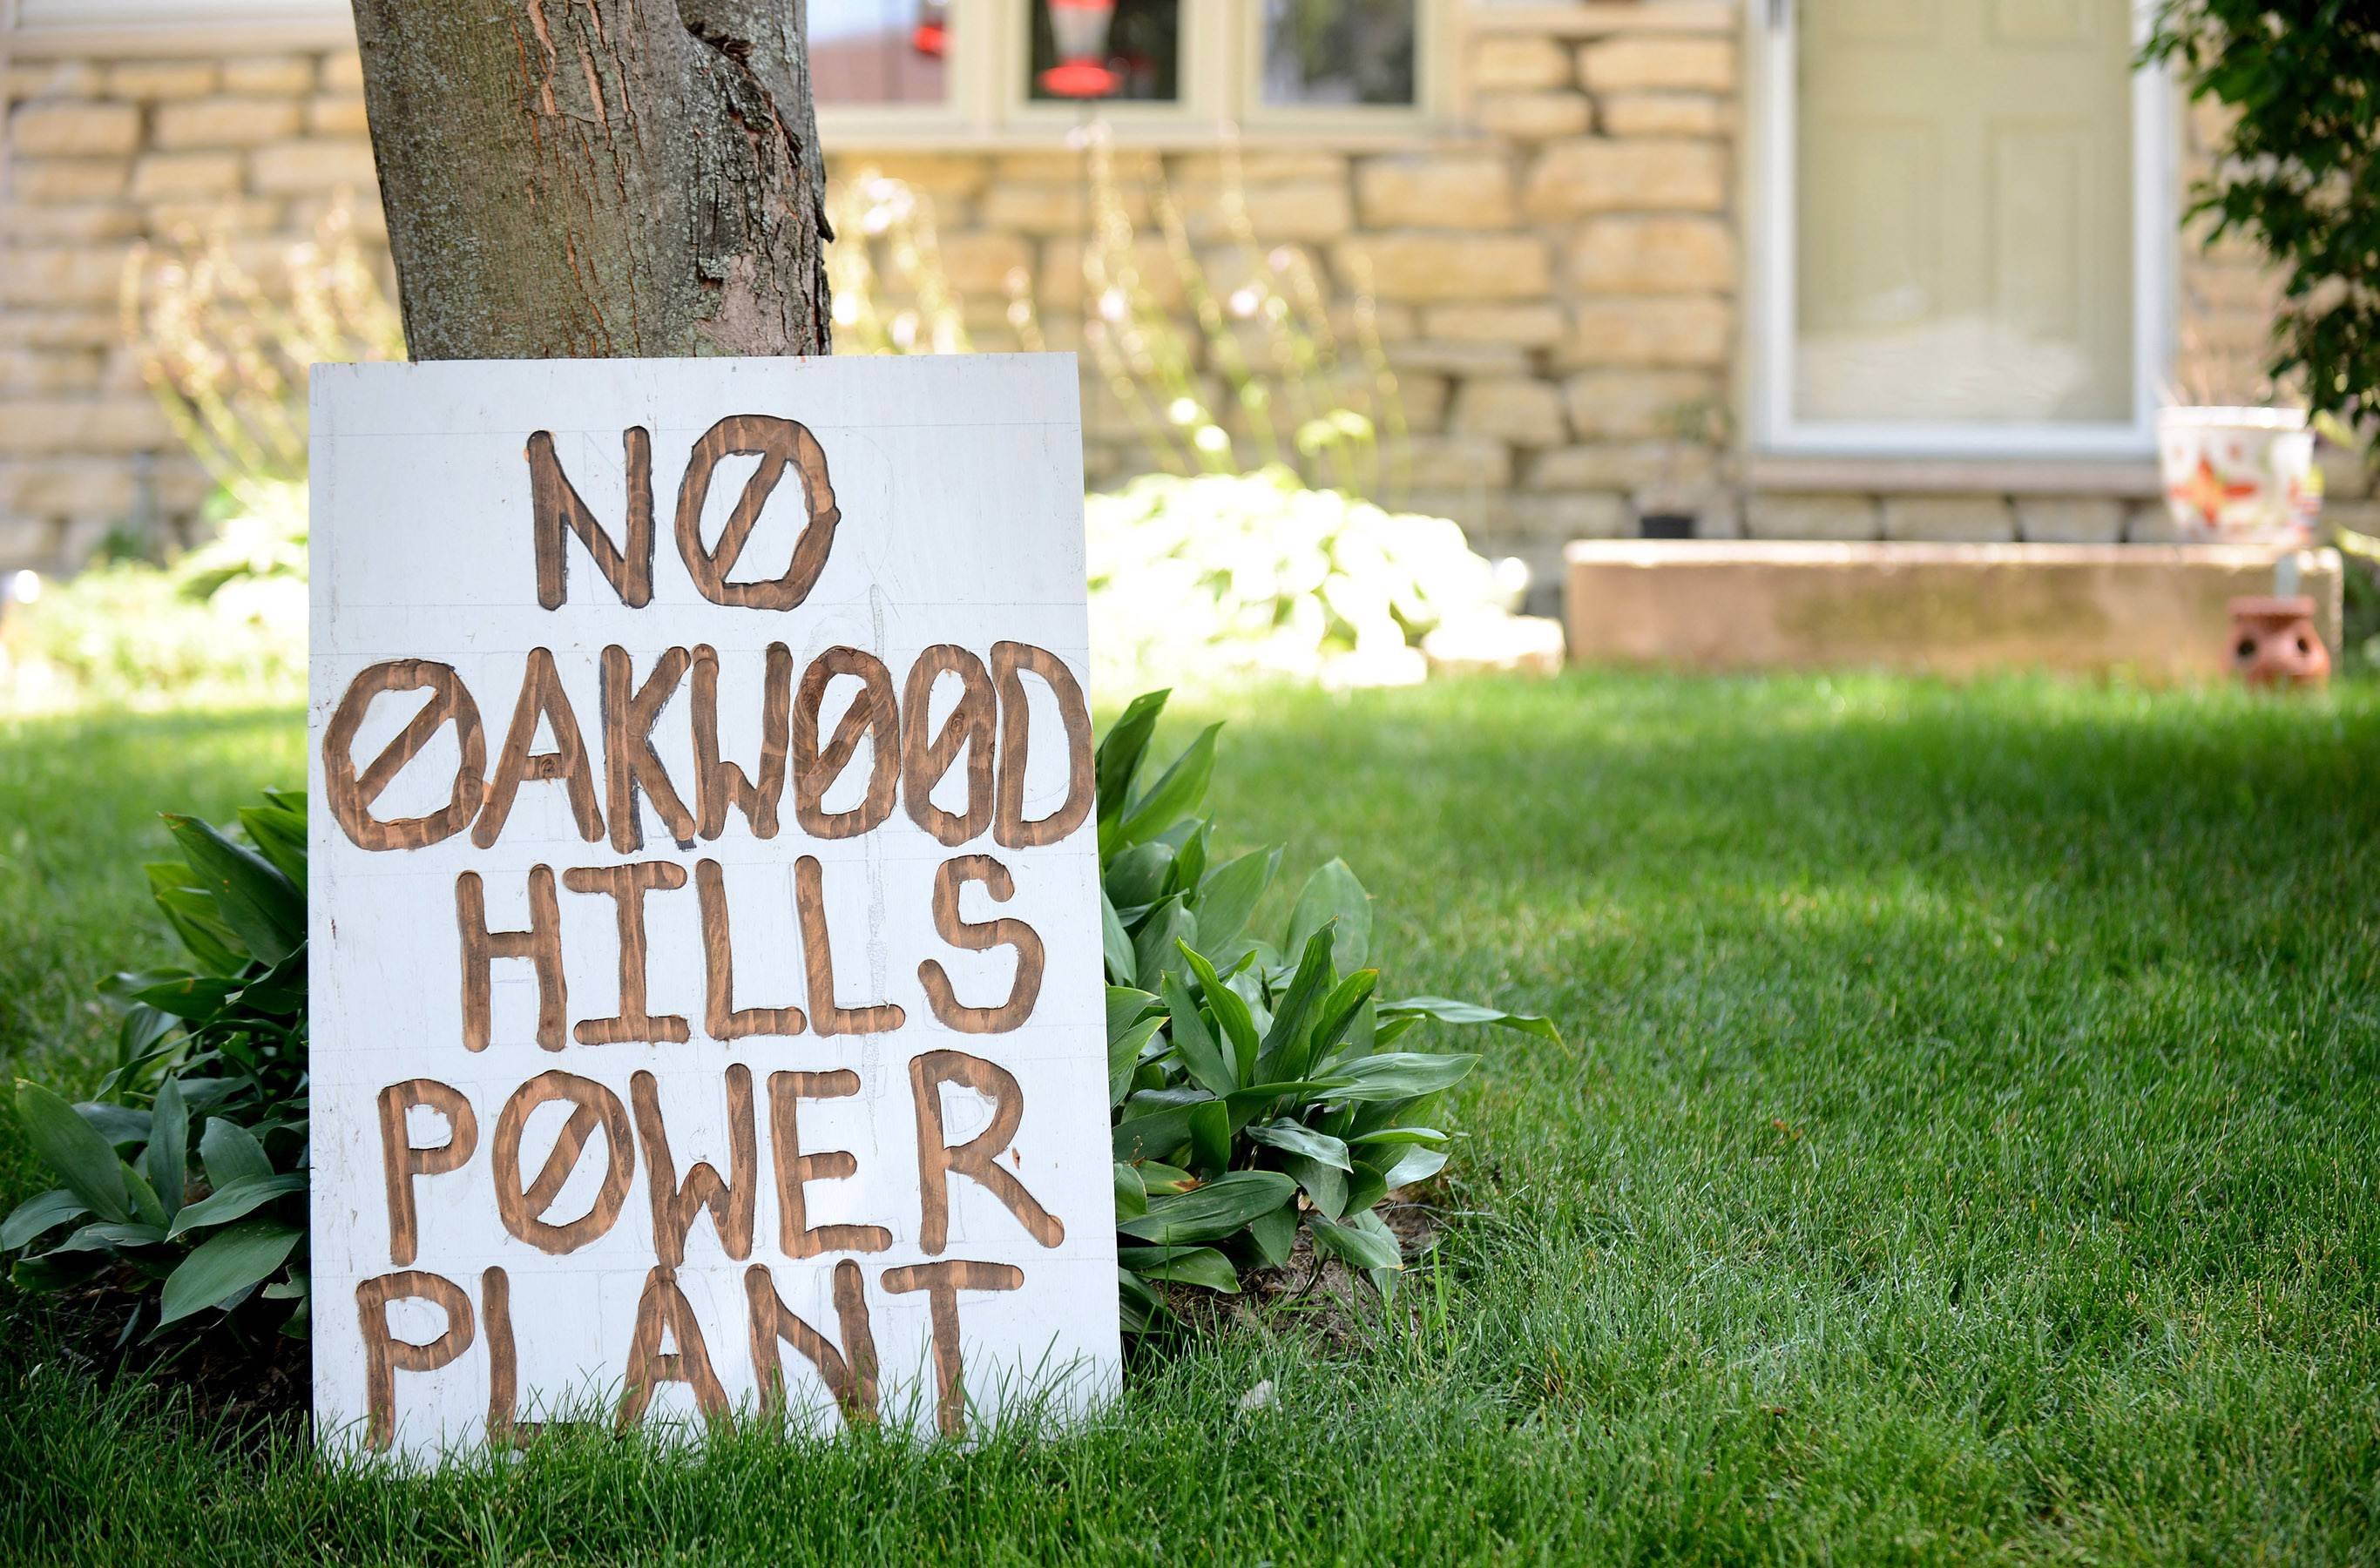 Acting mayor named in Oakwood Hills amid resignations over power plant